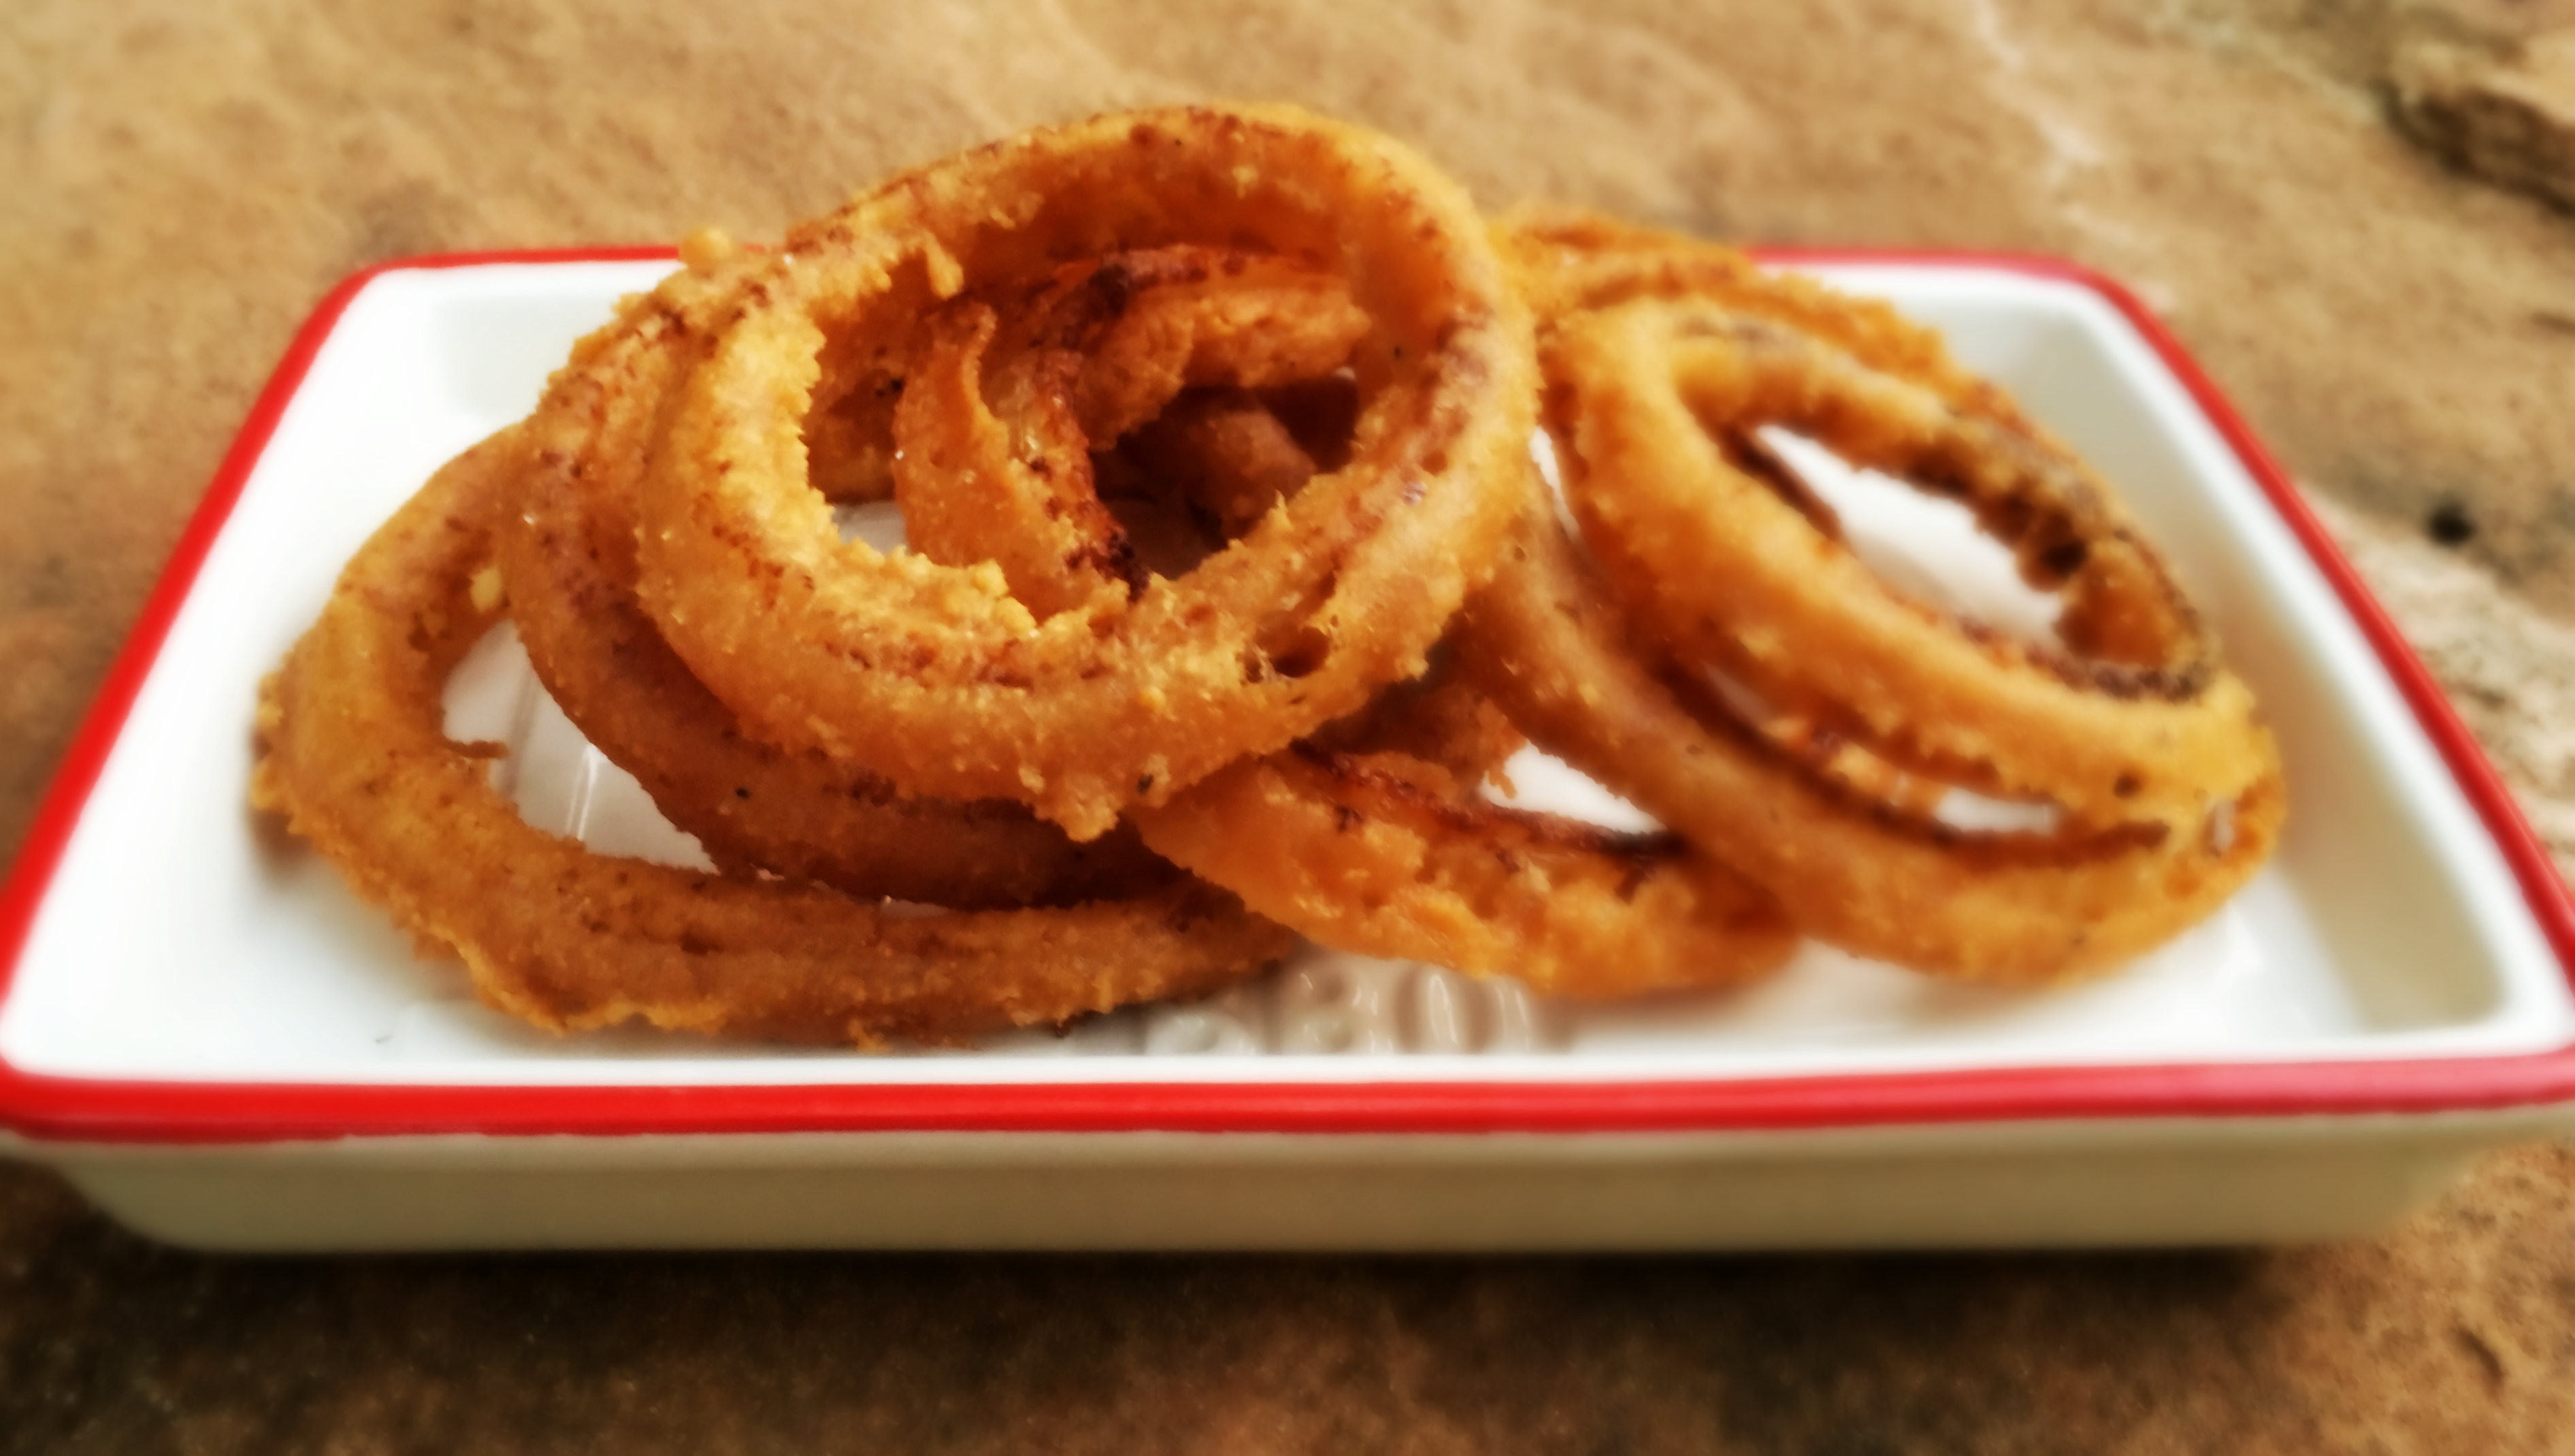 fry summer your pin homemade bake for onion or lunch rings tasty next out grill